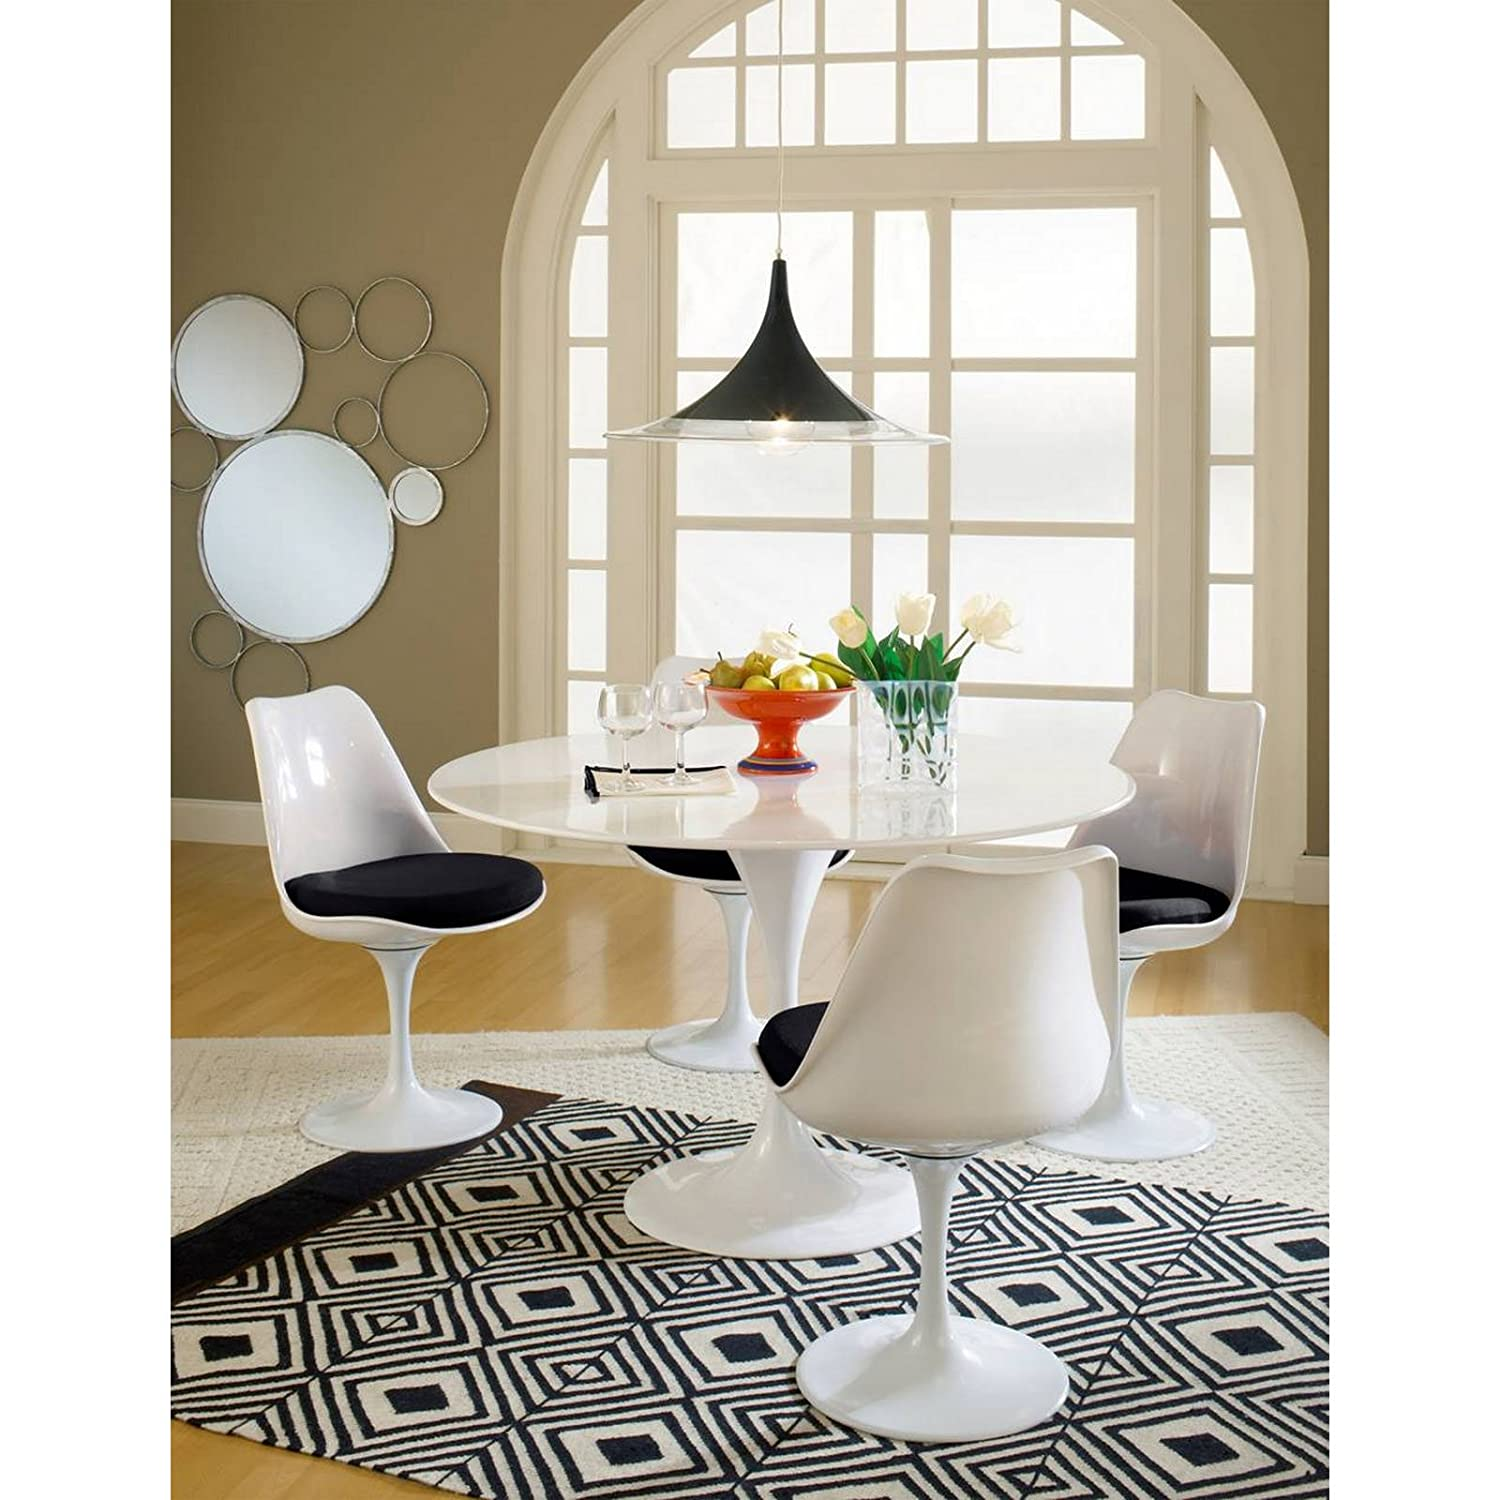 Amazoncom Modway Lippa Piece Fiberglass Dining Set In Black - Eero saarinen tulip table and chairs